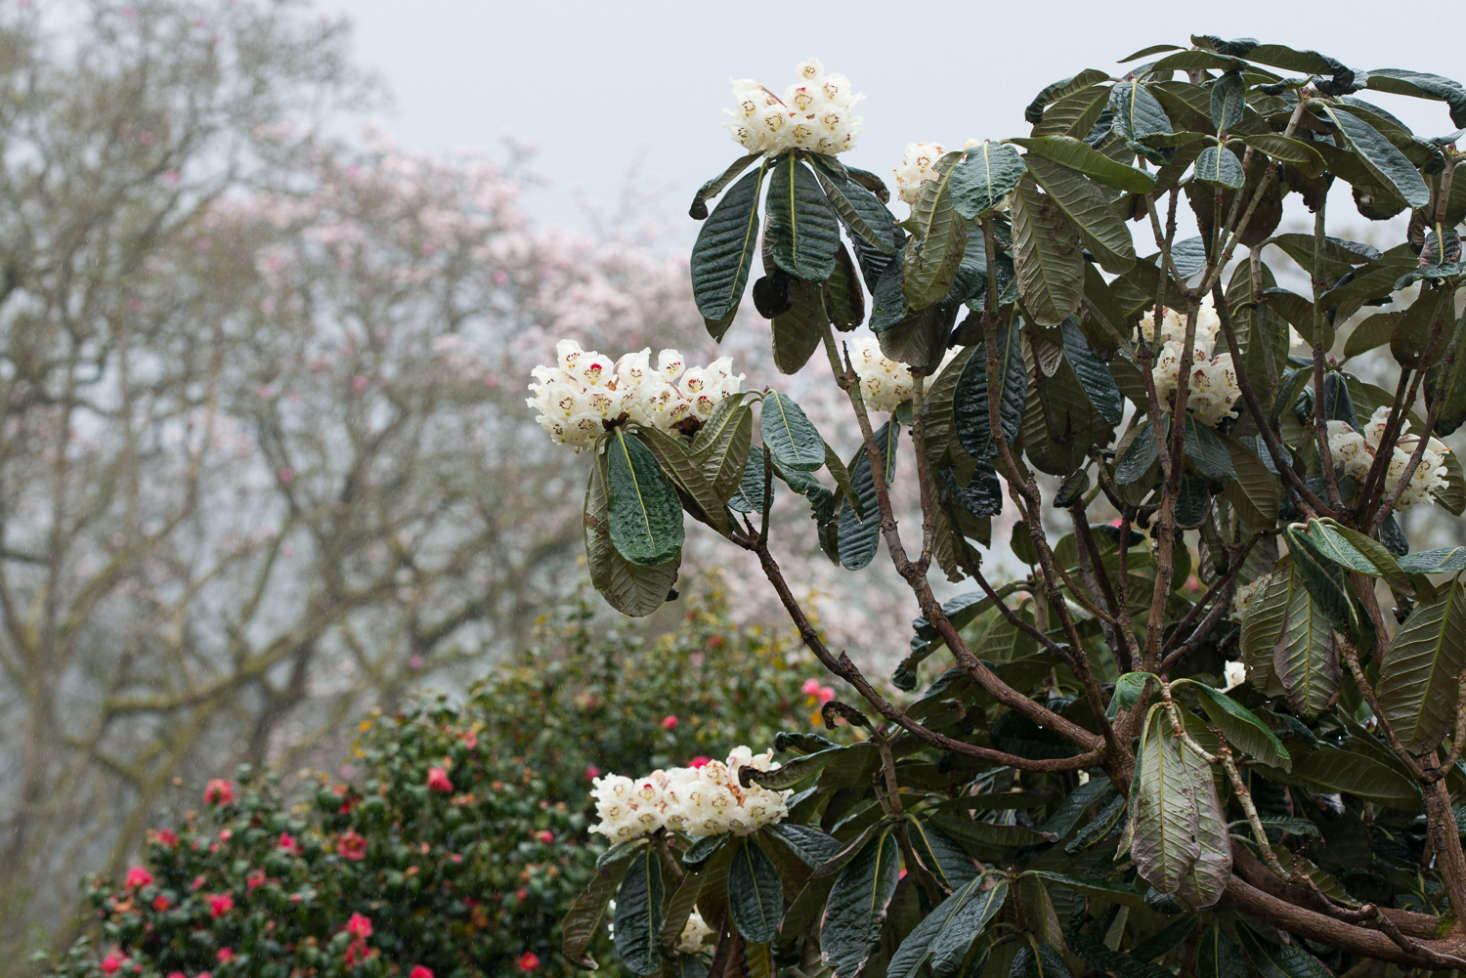 Rhododendrons at Caerhays in Cornwall.